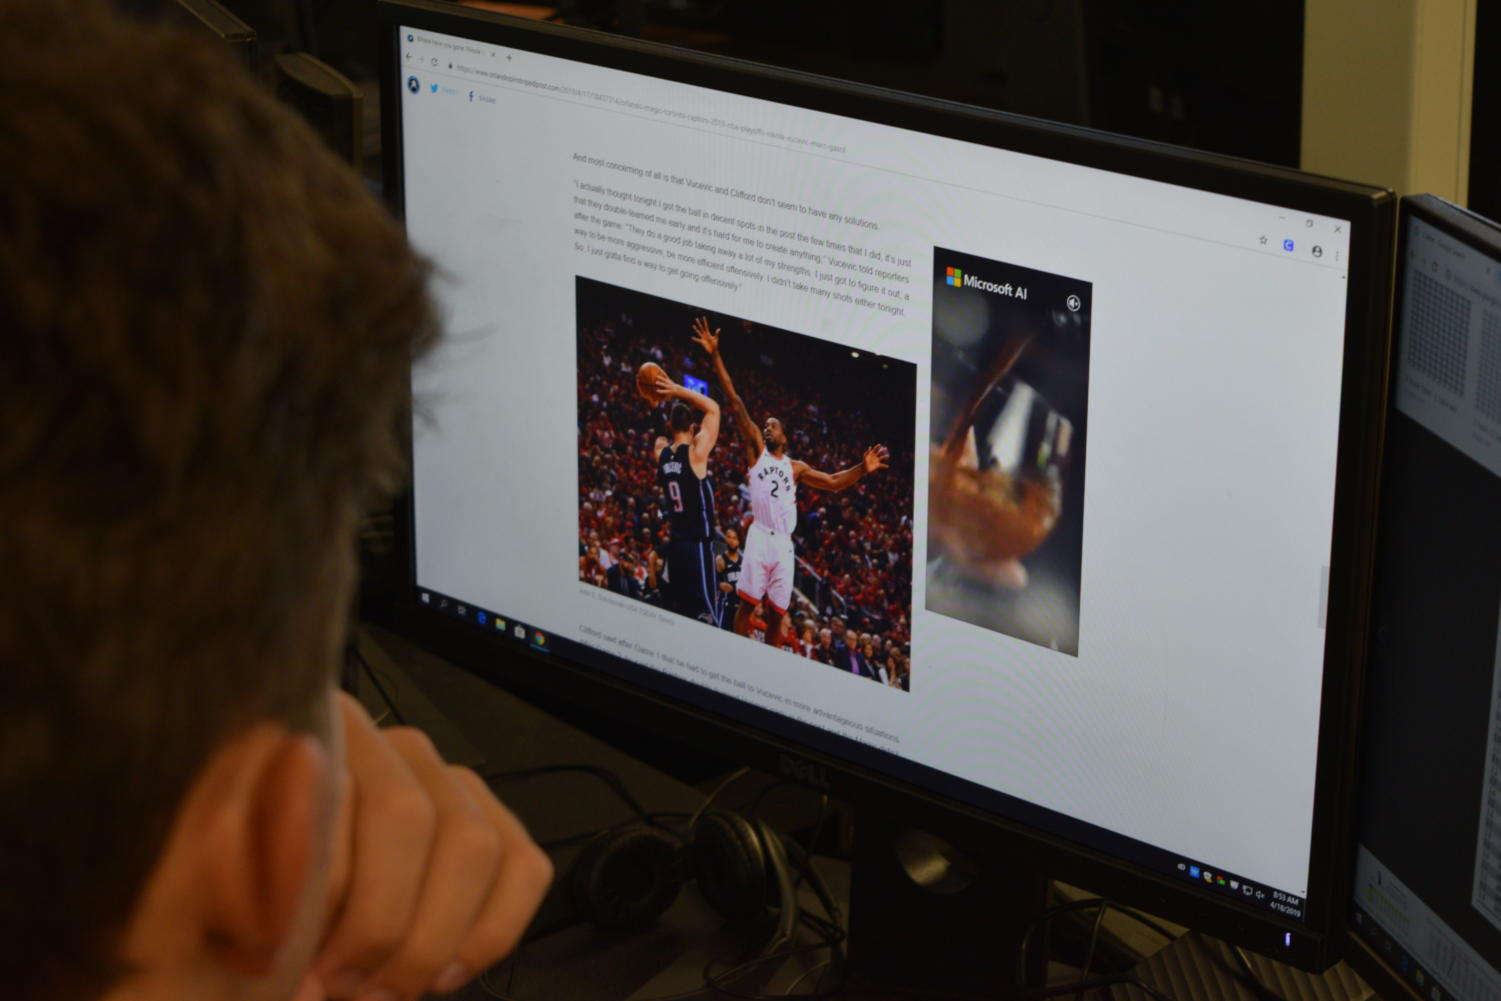 Sports fan Andre Ramirez looks at stats for the Magic game.